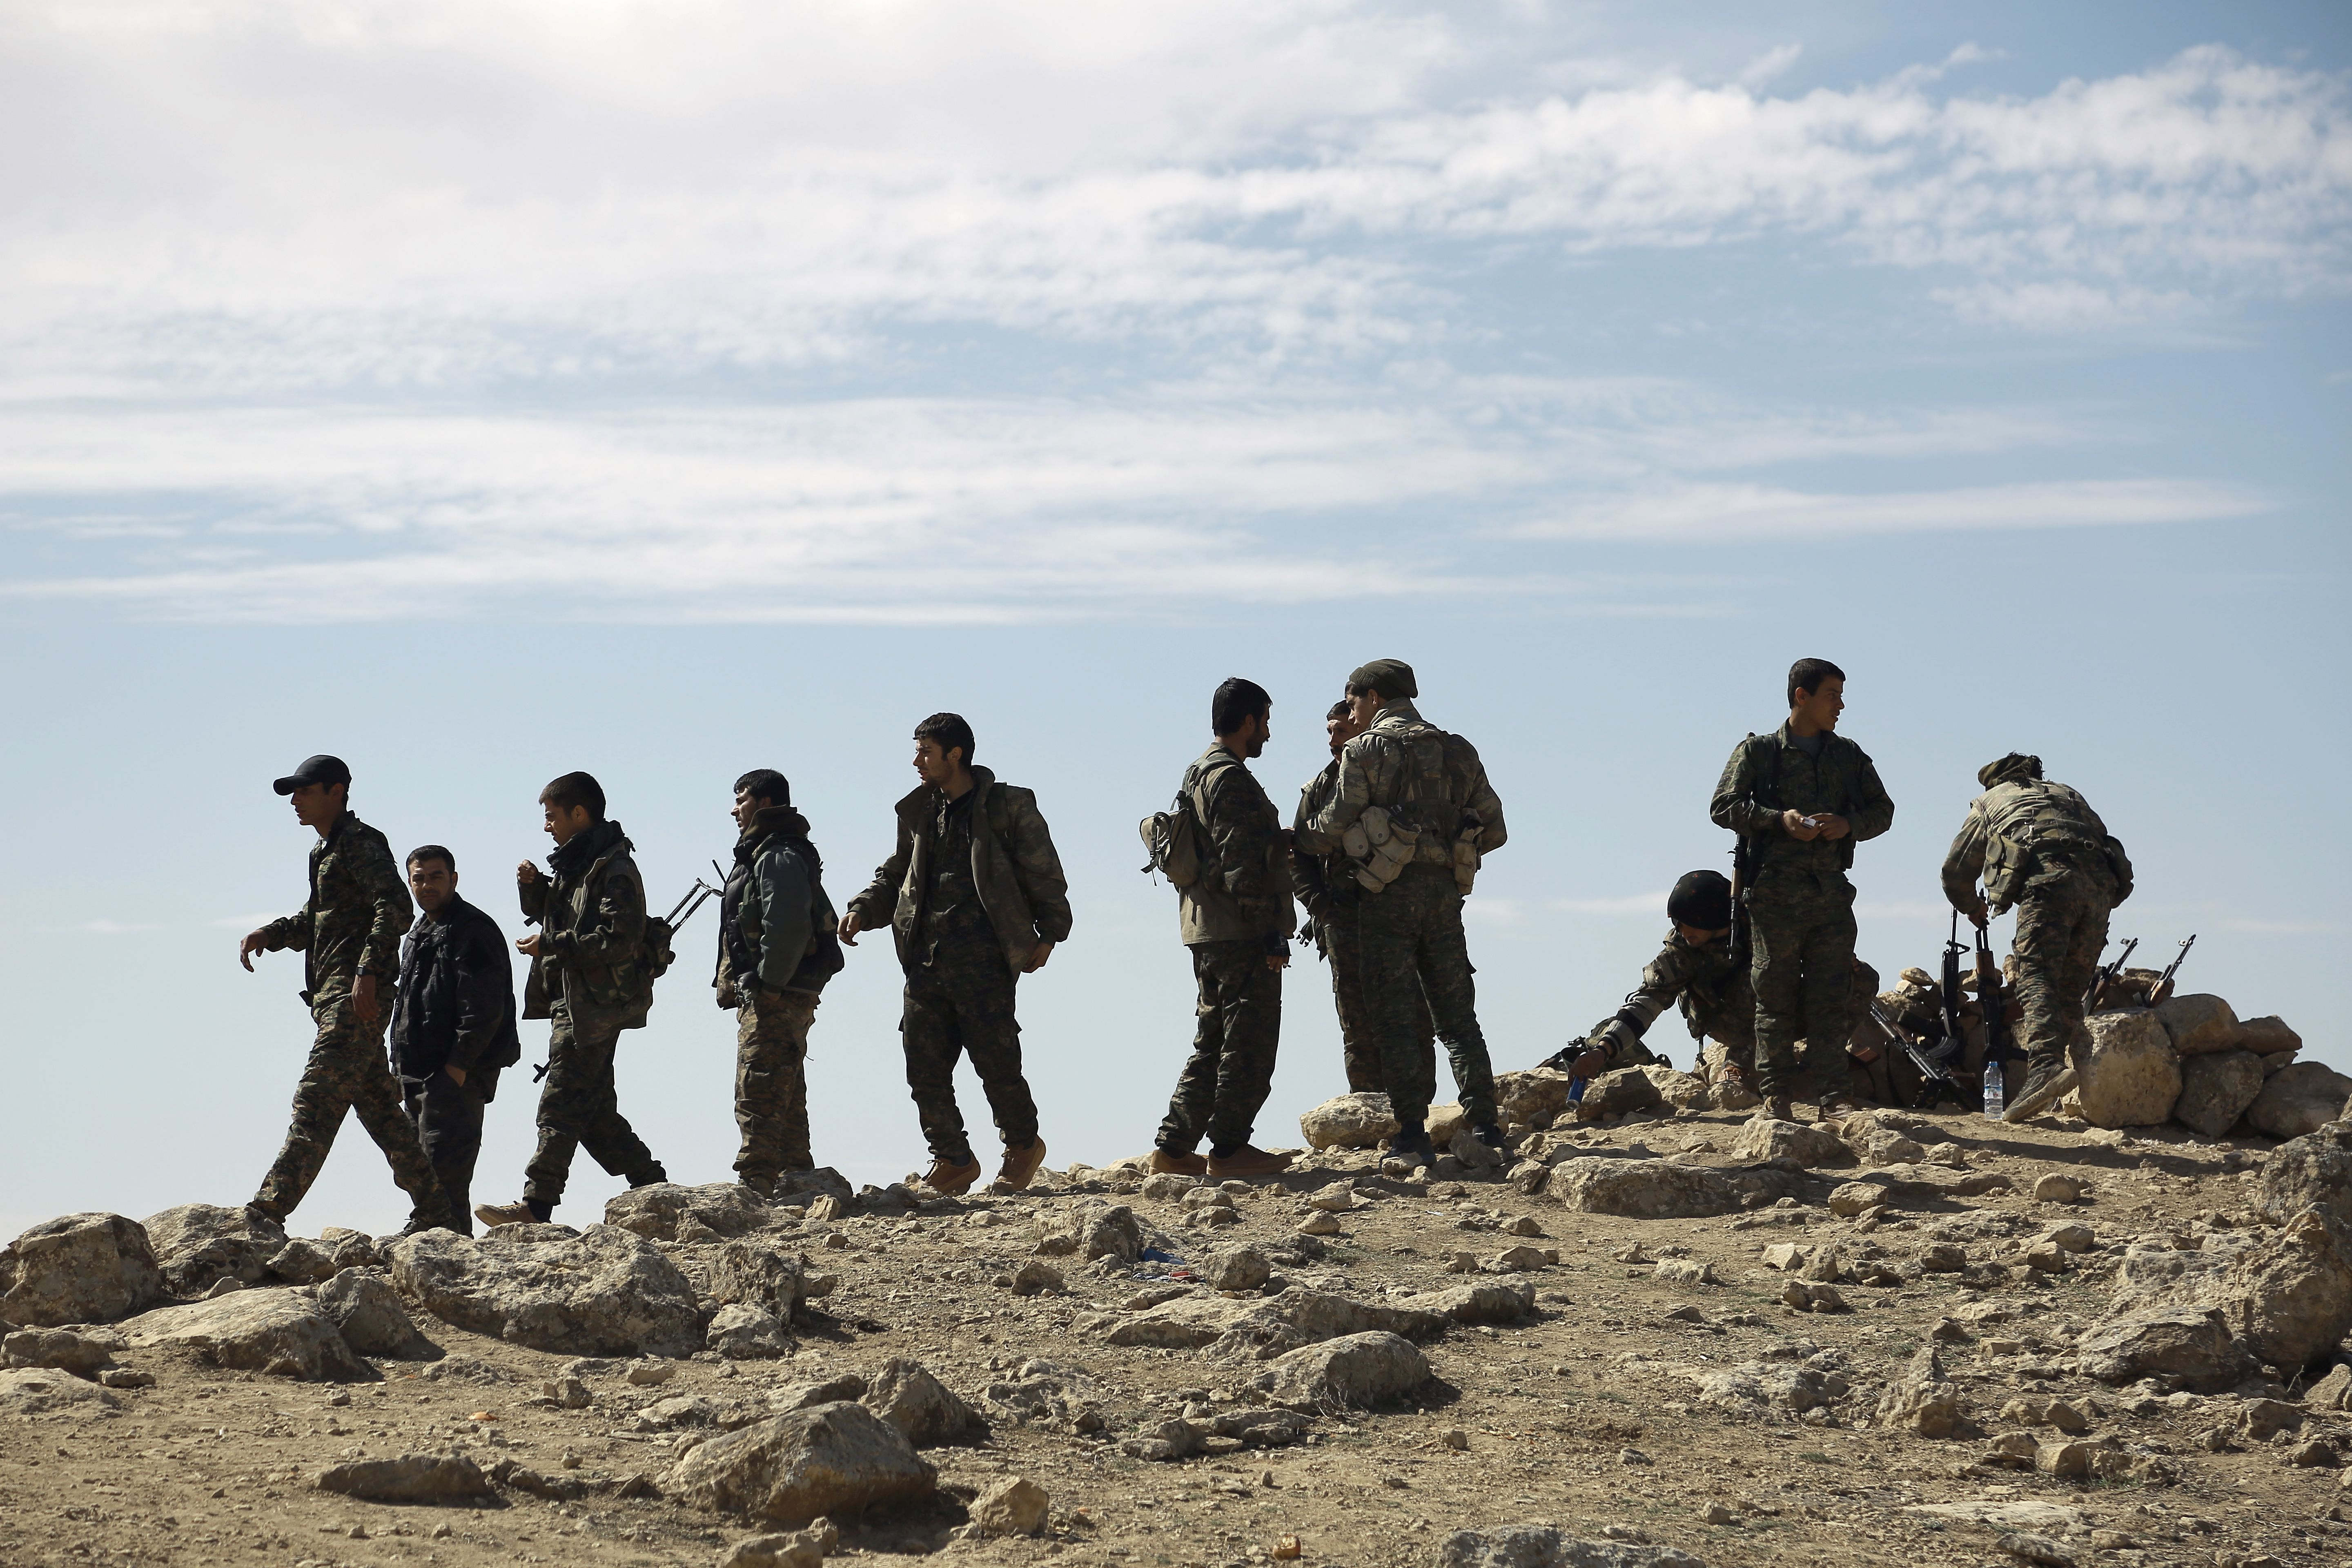 Fighters from the Syrian Democratic Forces gather on the outskirts of the town of al-Shadadi in the northeastern Syrian province of Hasakeh, on Feb. 19, 2016.